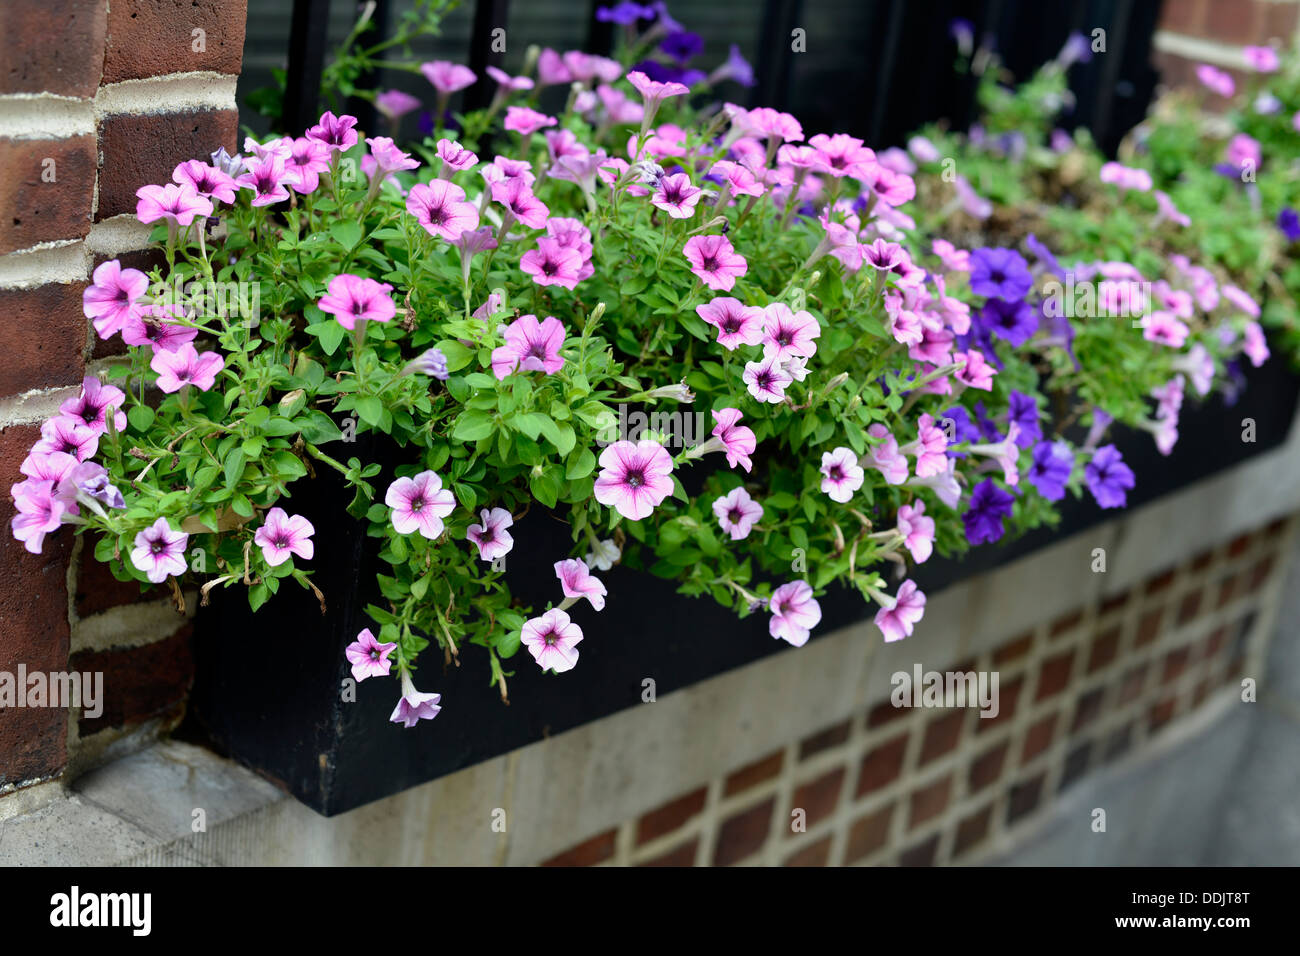 Window Ledge Outdoor Flower Box, Filled with Pink and Purple Small Flowers - Stock Image